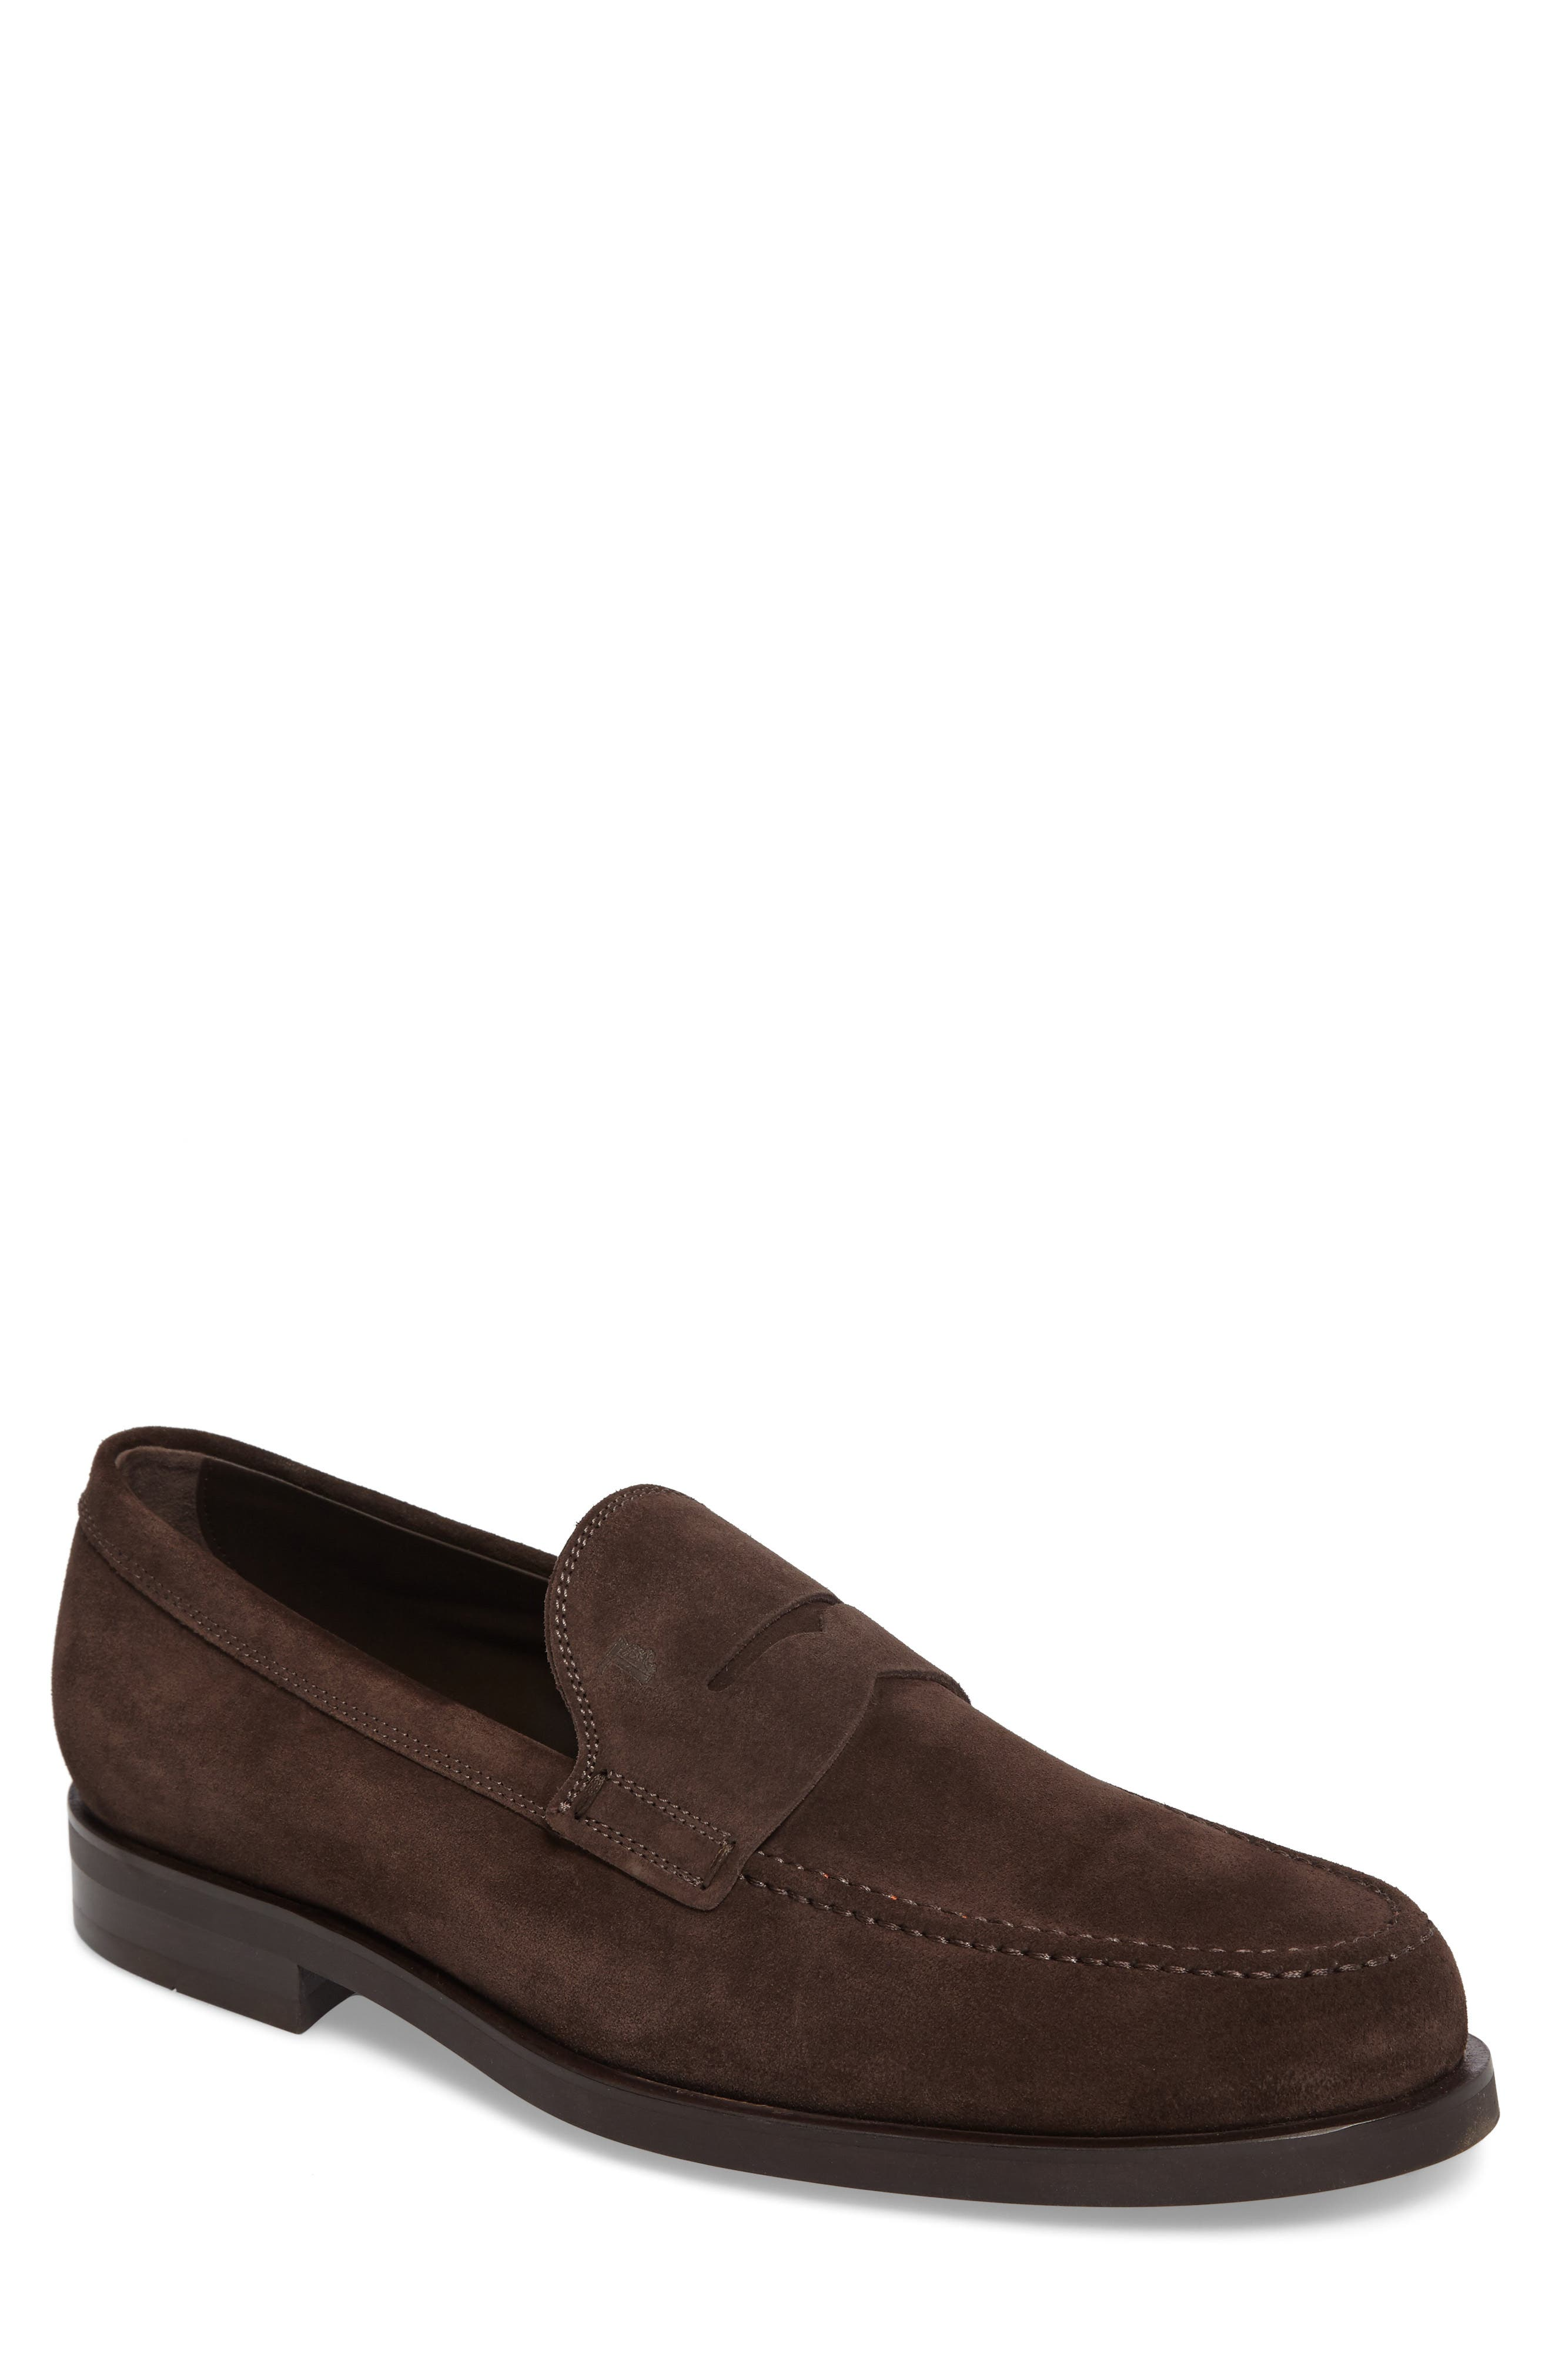 Alternate Image 1 Selected - Tod's Penny Loafer (Men)